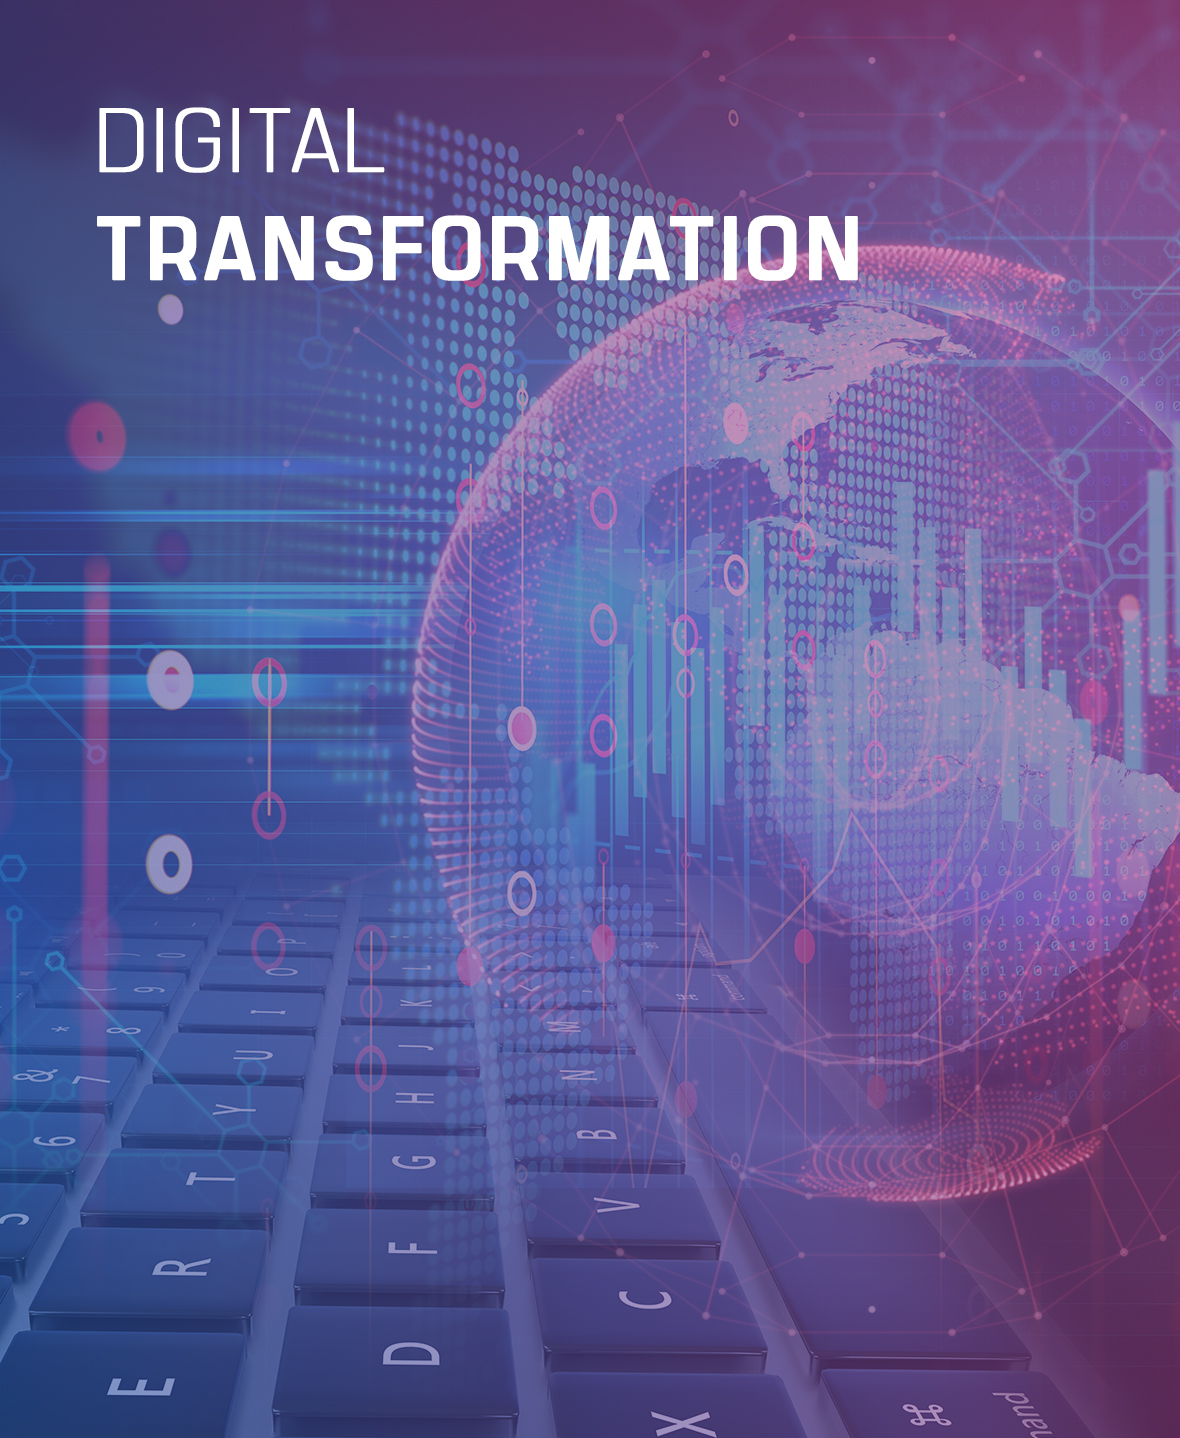 Digital Transformation - What does it really mean?